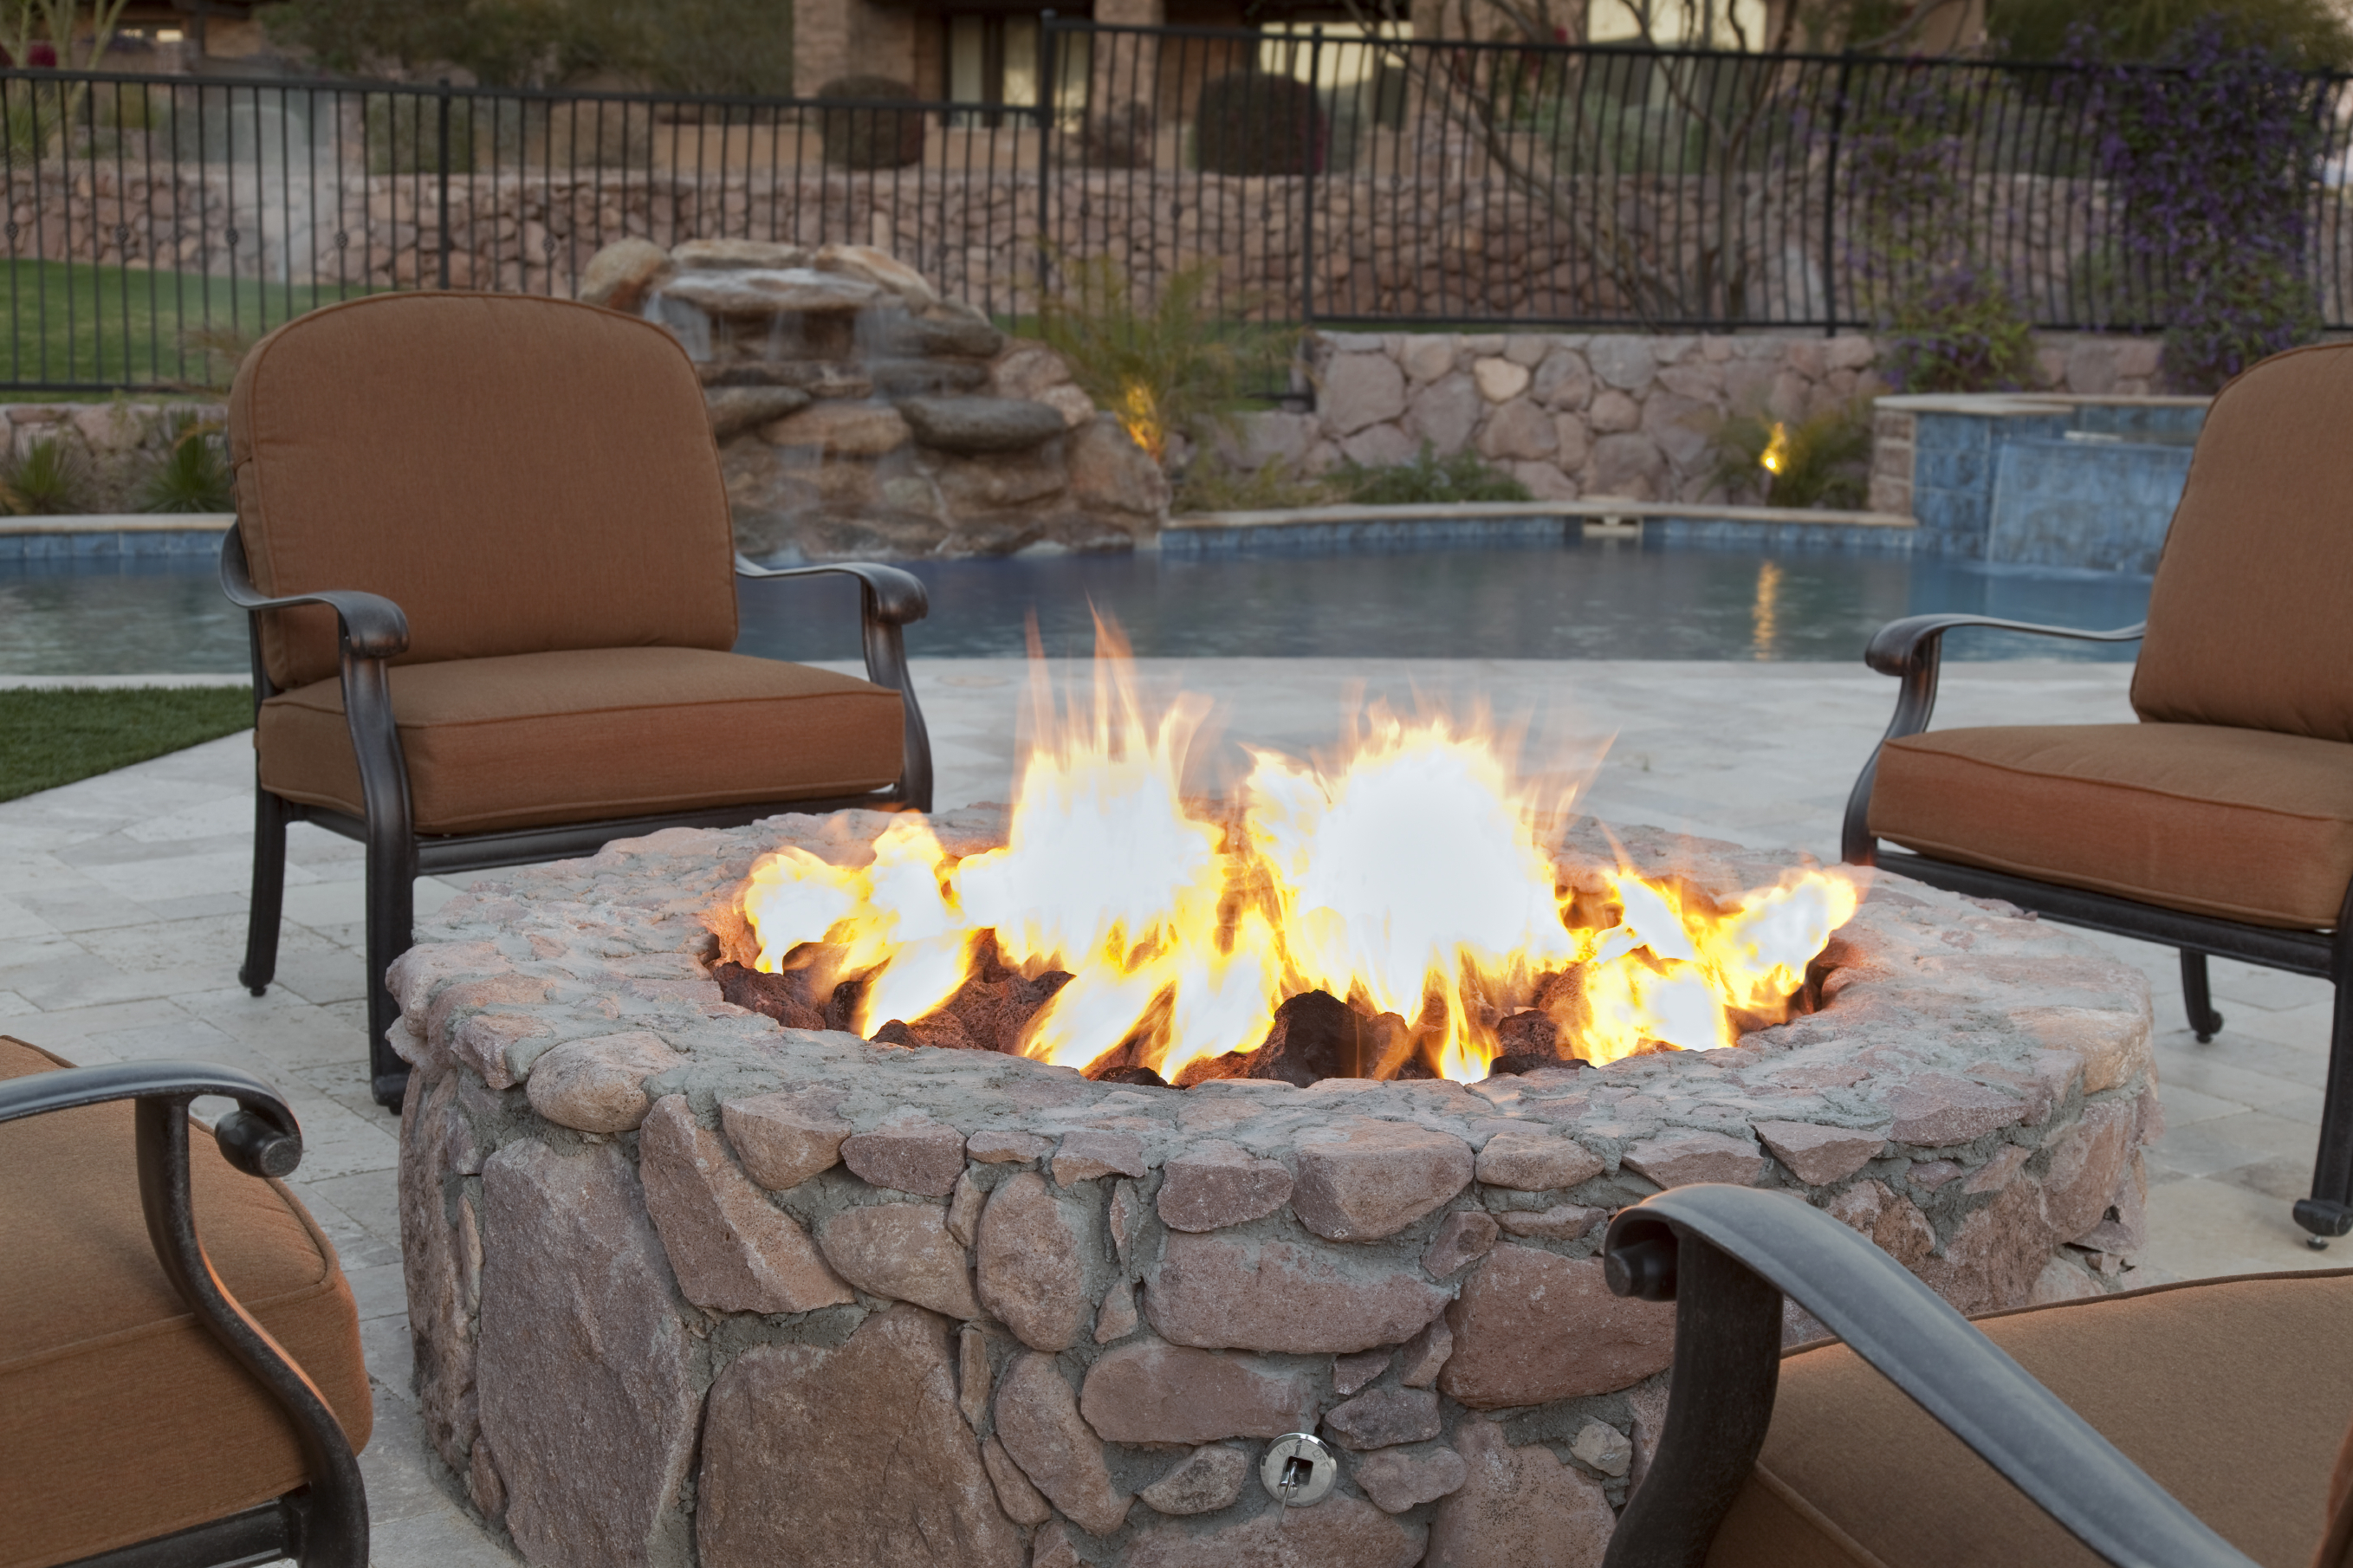 Enjoy The Fall With A Brand New Fire Pit Rismedia S